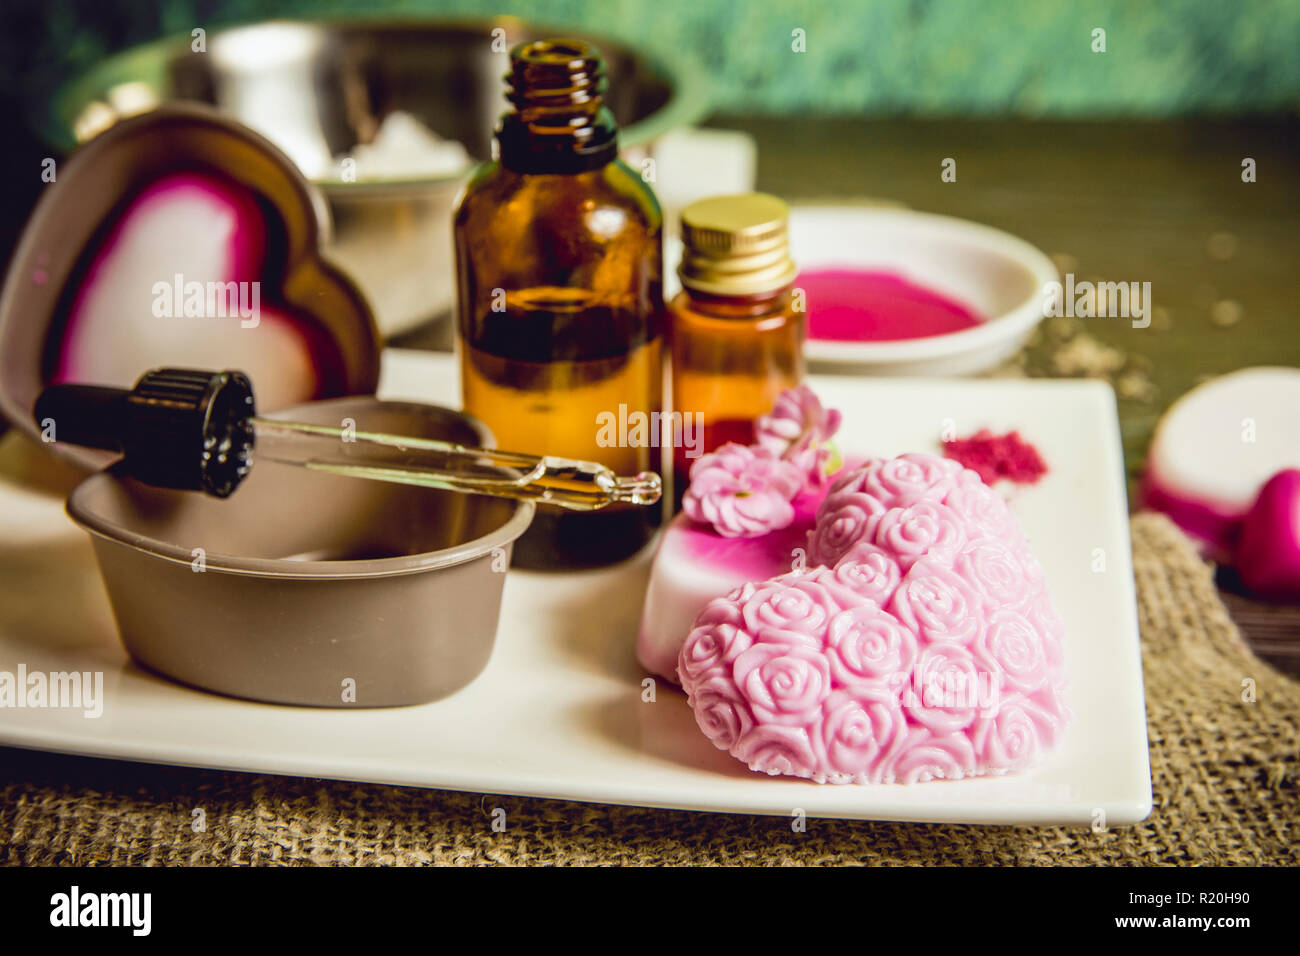 Soap Making Stock Photos & Soap Making Stock Images - Alamy